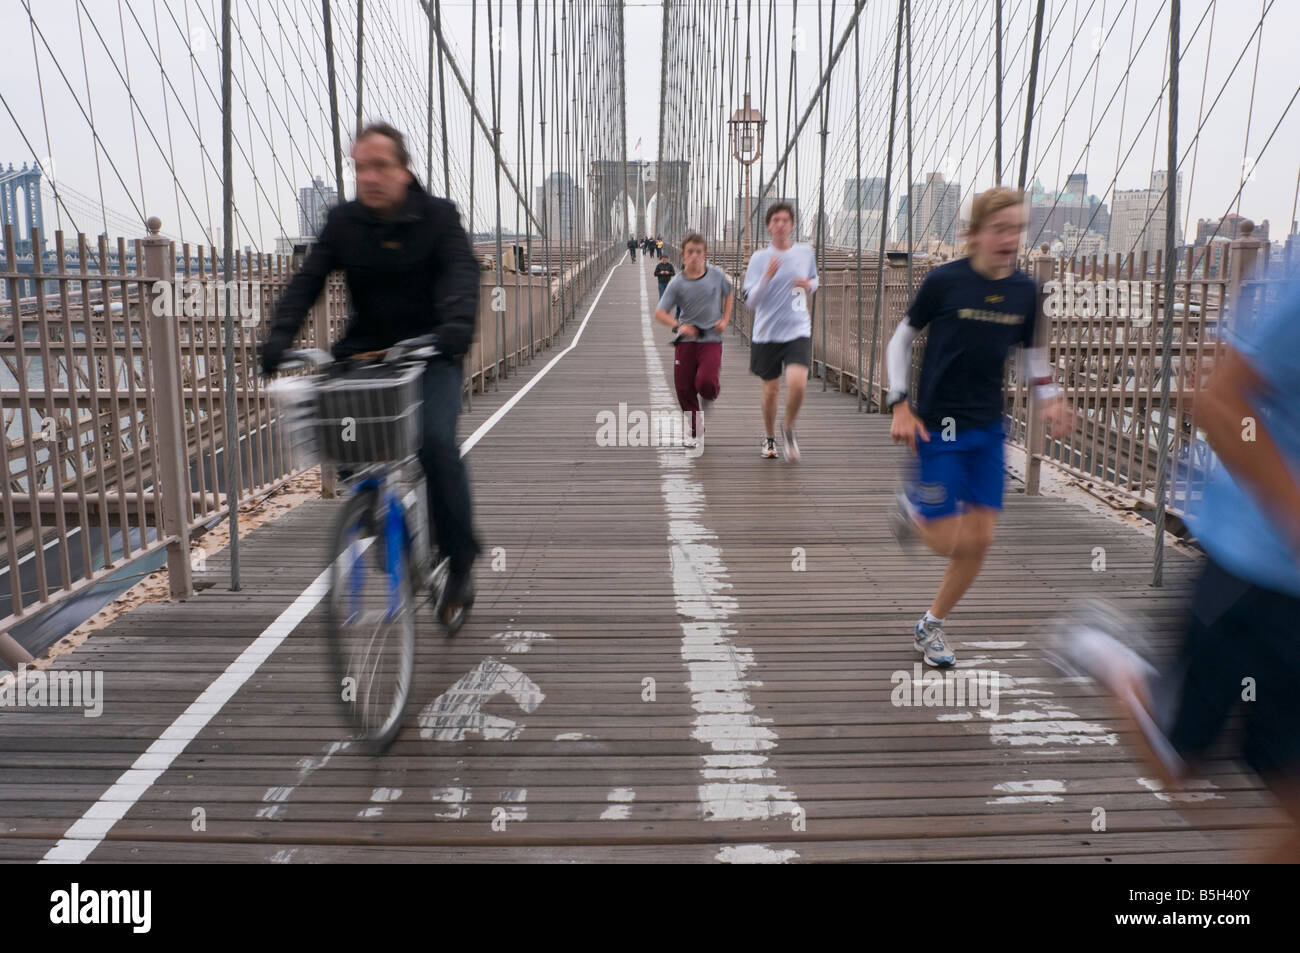 New York NY 3 November 2008 Joggers and cyclists on the pedestrian path of the Brooklyn Bridge Stock Photo